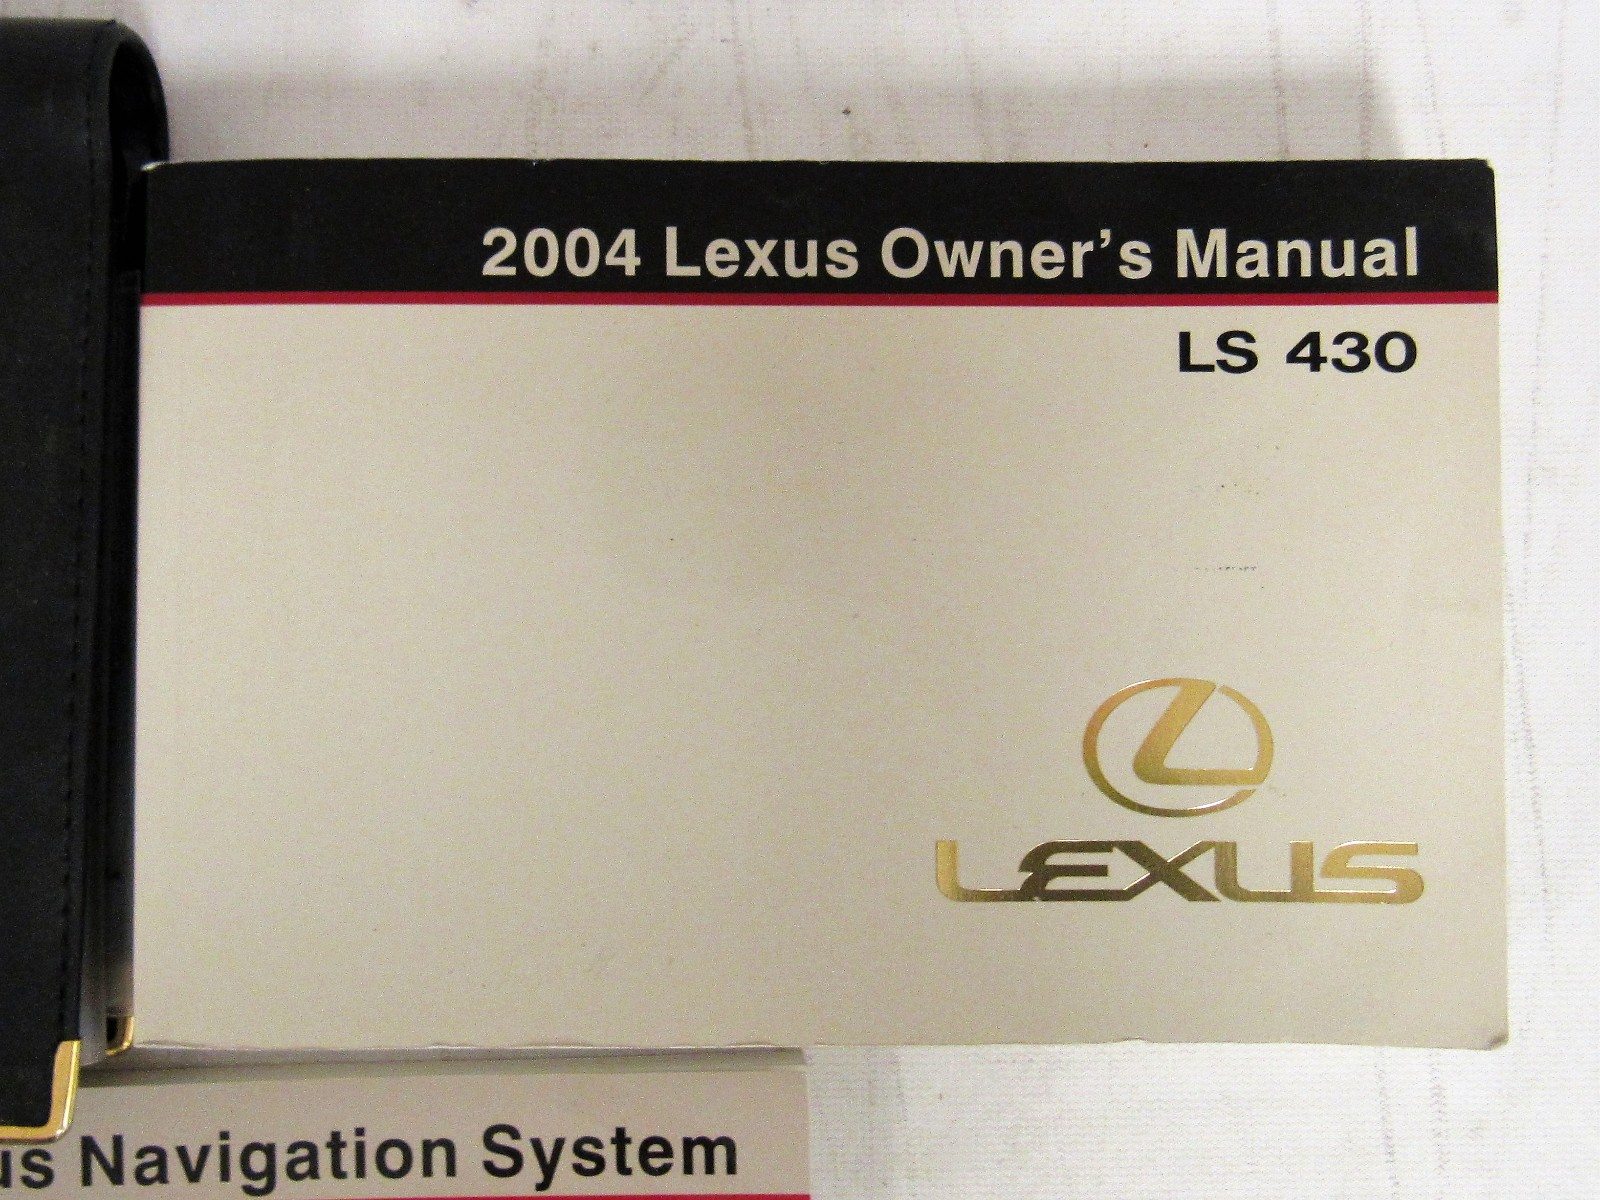 2004 lexus ls owners manual open source user manual u2022 rh dramatic varieties com lexus ls430 owners manual pdf 2004 lexus ls430 service manual